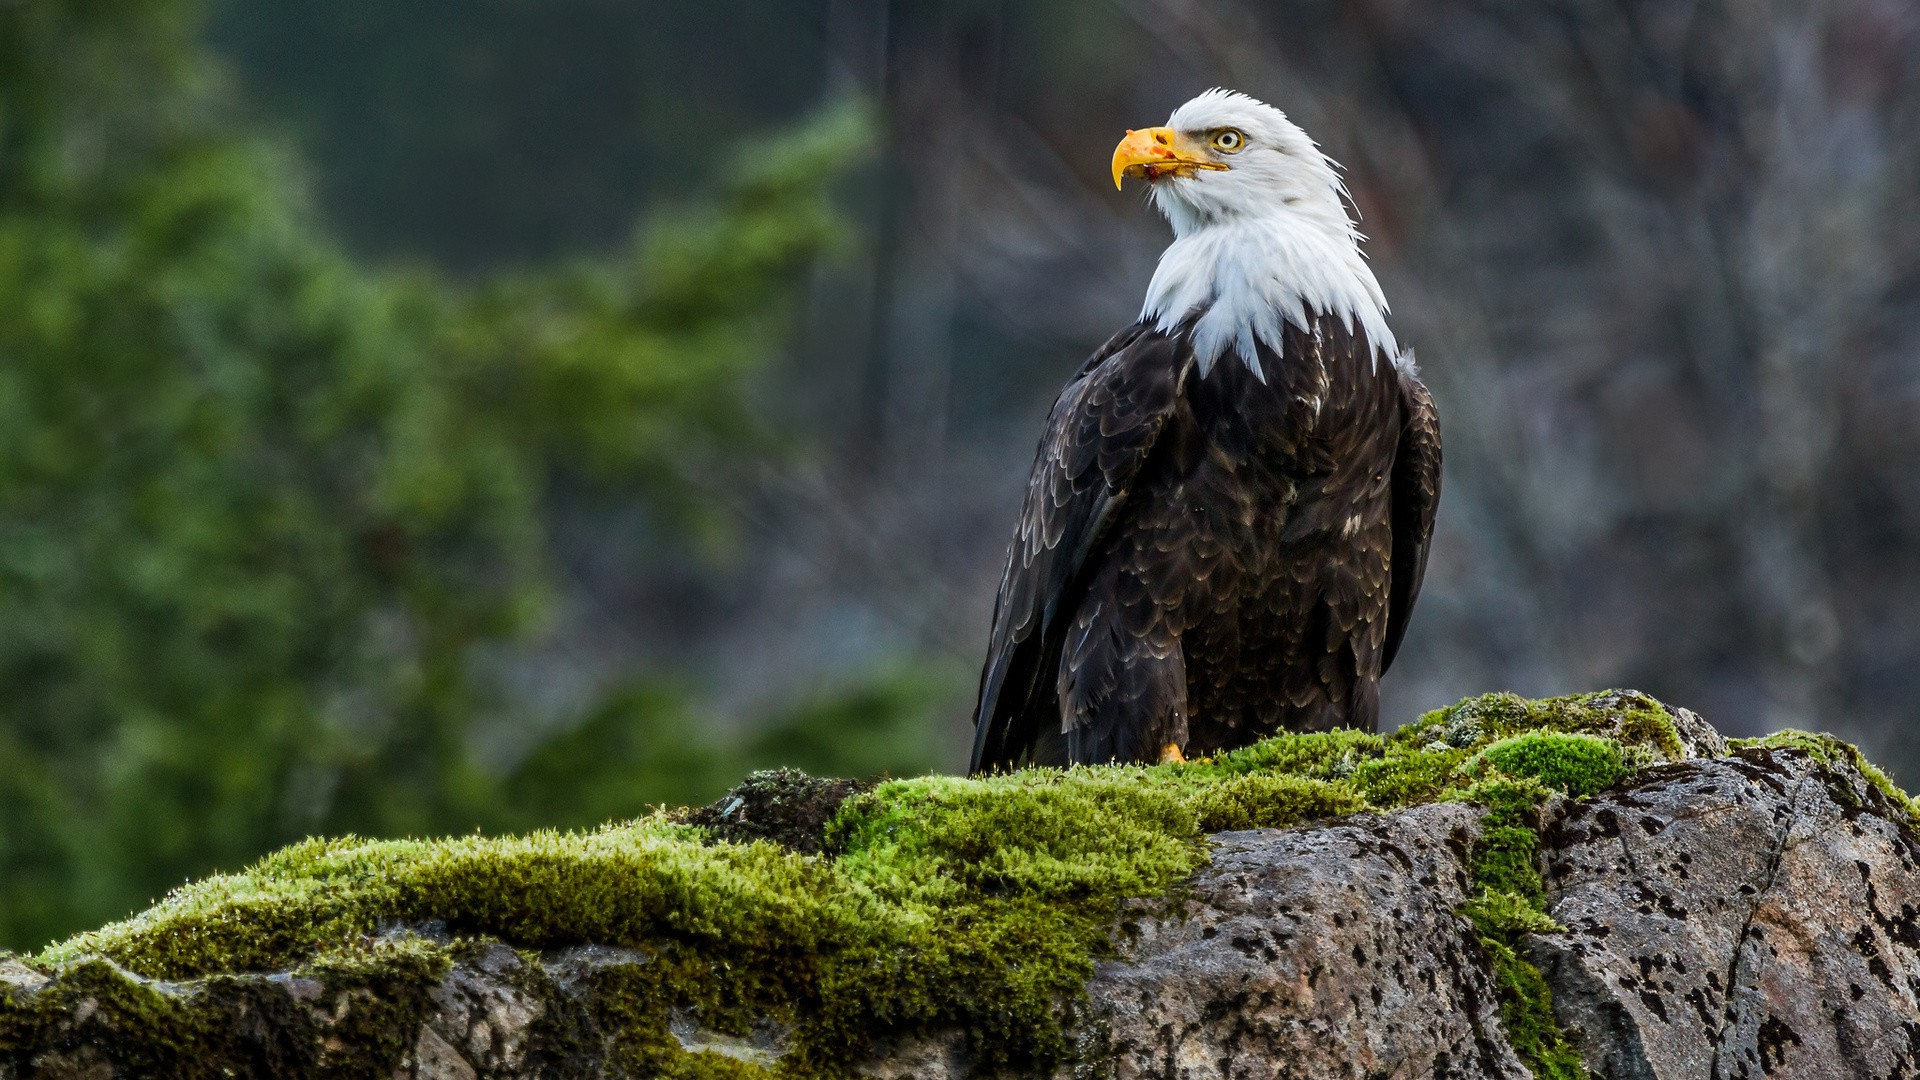 animals Nature Wildlife Eagle Birds Moss Bald Eagle 1920x1080